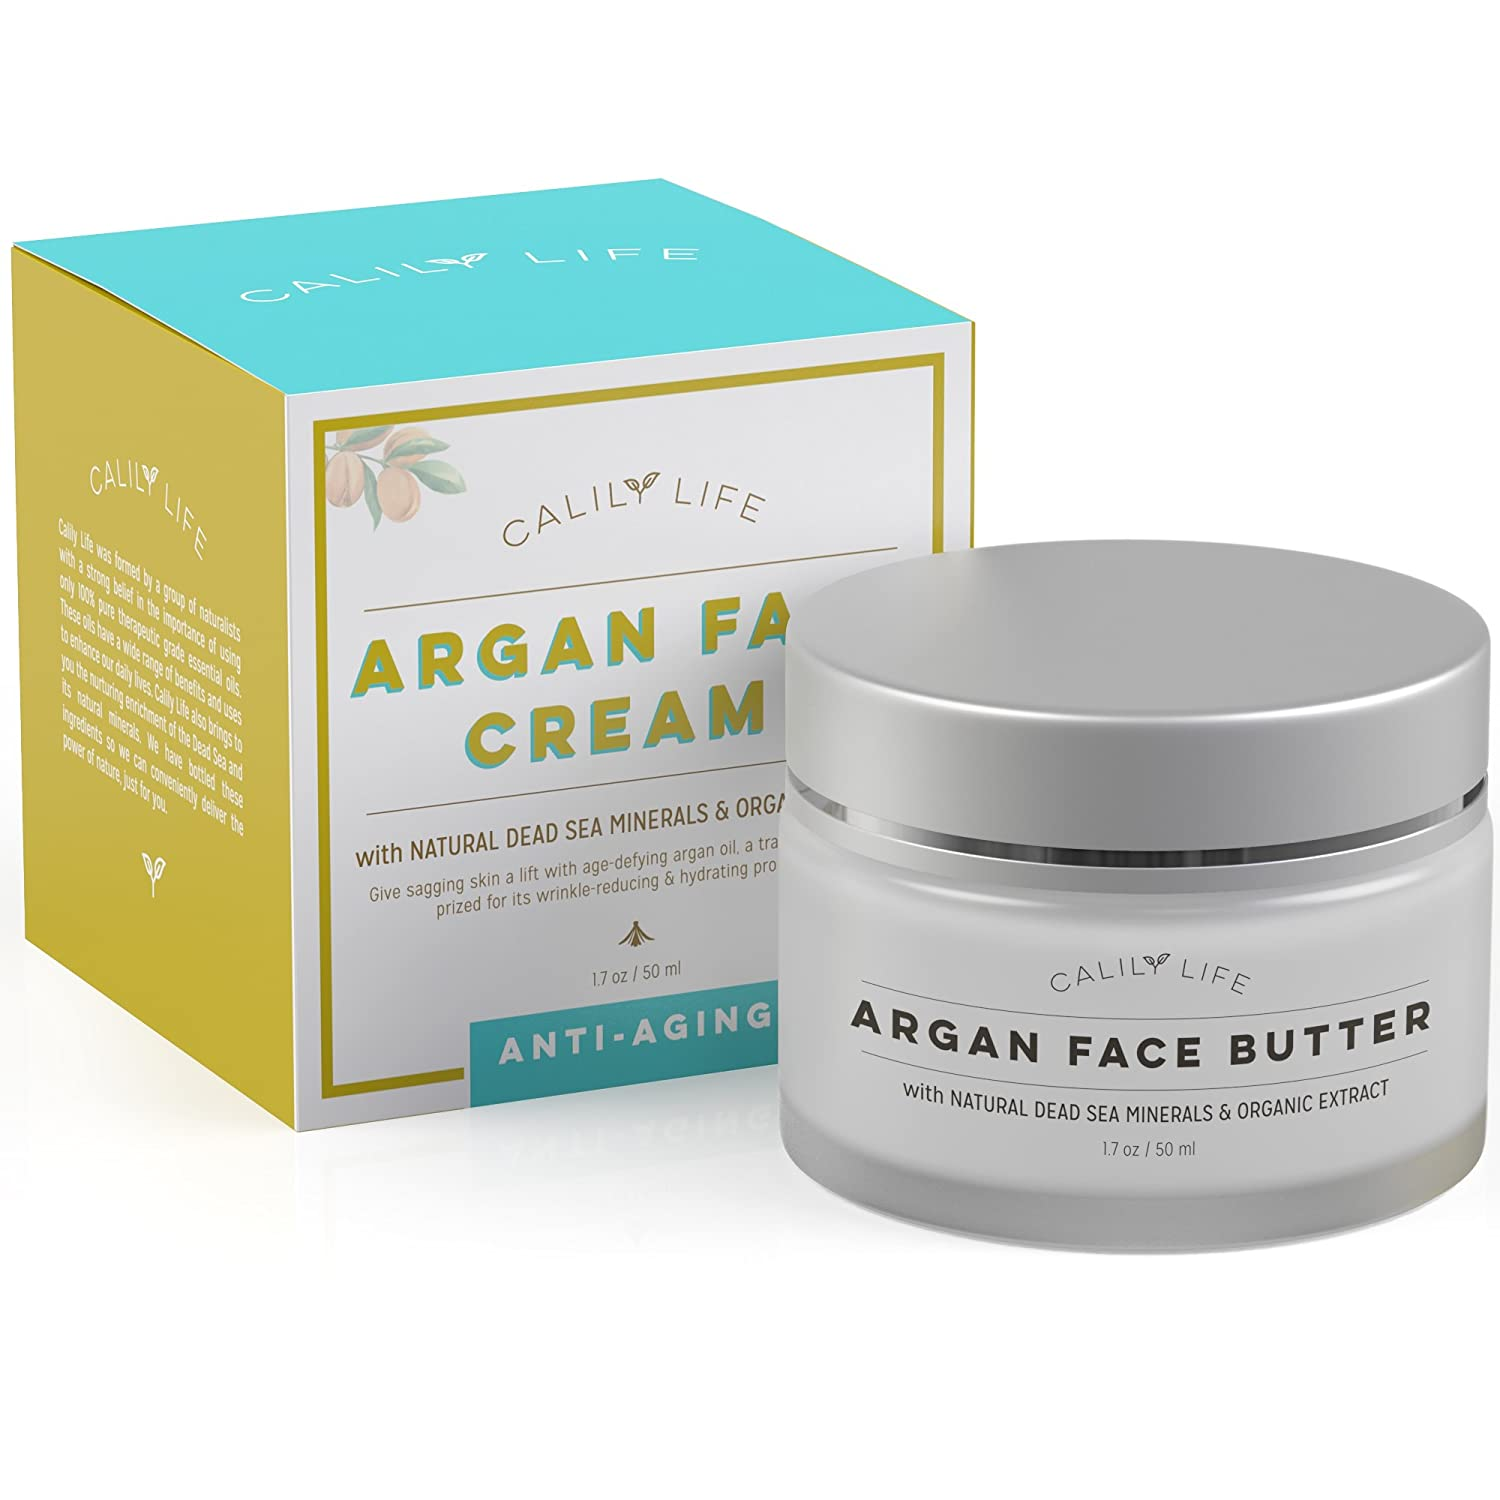 Calily Life Organic Argan Face Cream with Dead Sea Minerals, 1.7 Oz. Ultra-Hydrating – Anti-Wrinkle and Anti-Aging – Smooths, Moisturizes and Regenerates